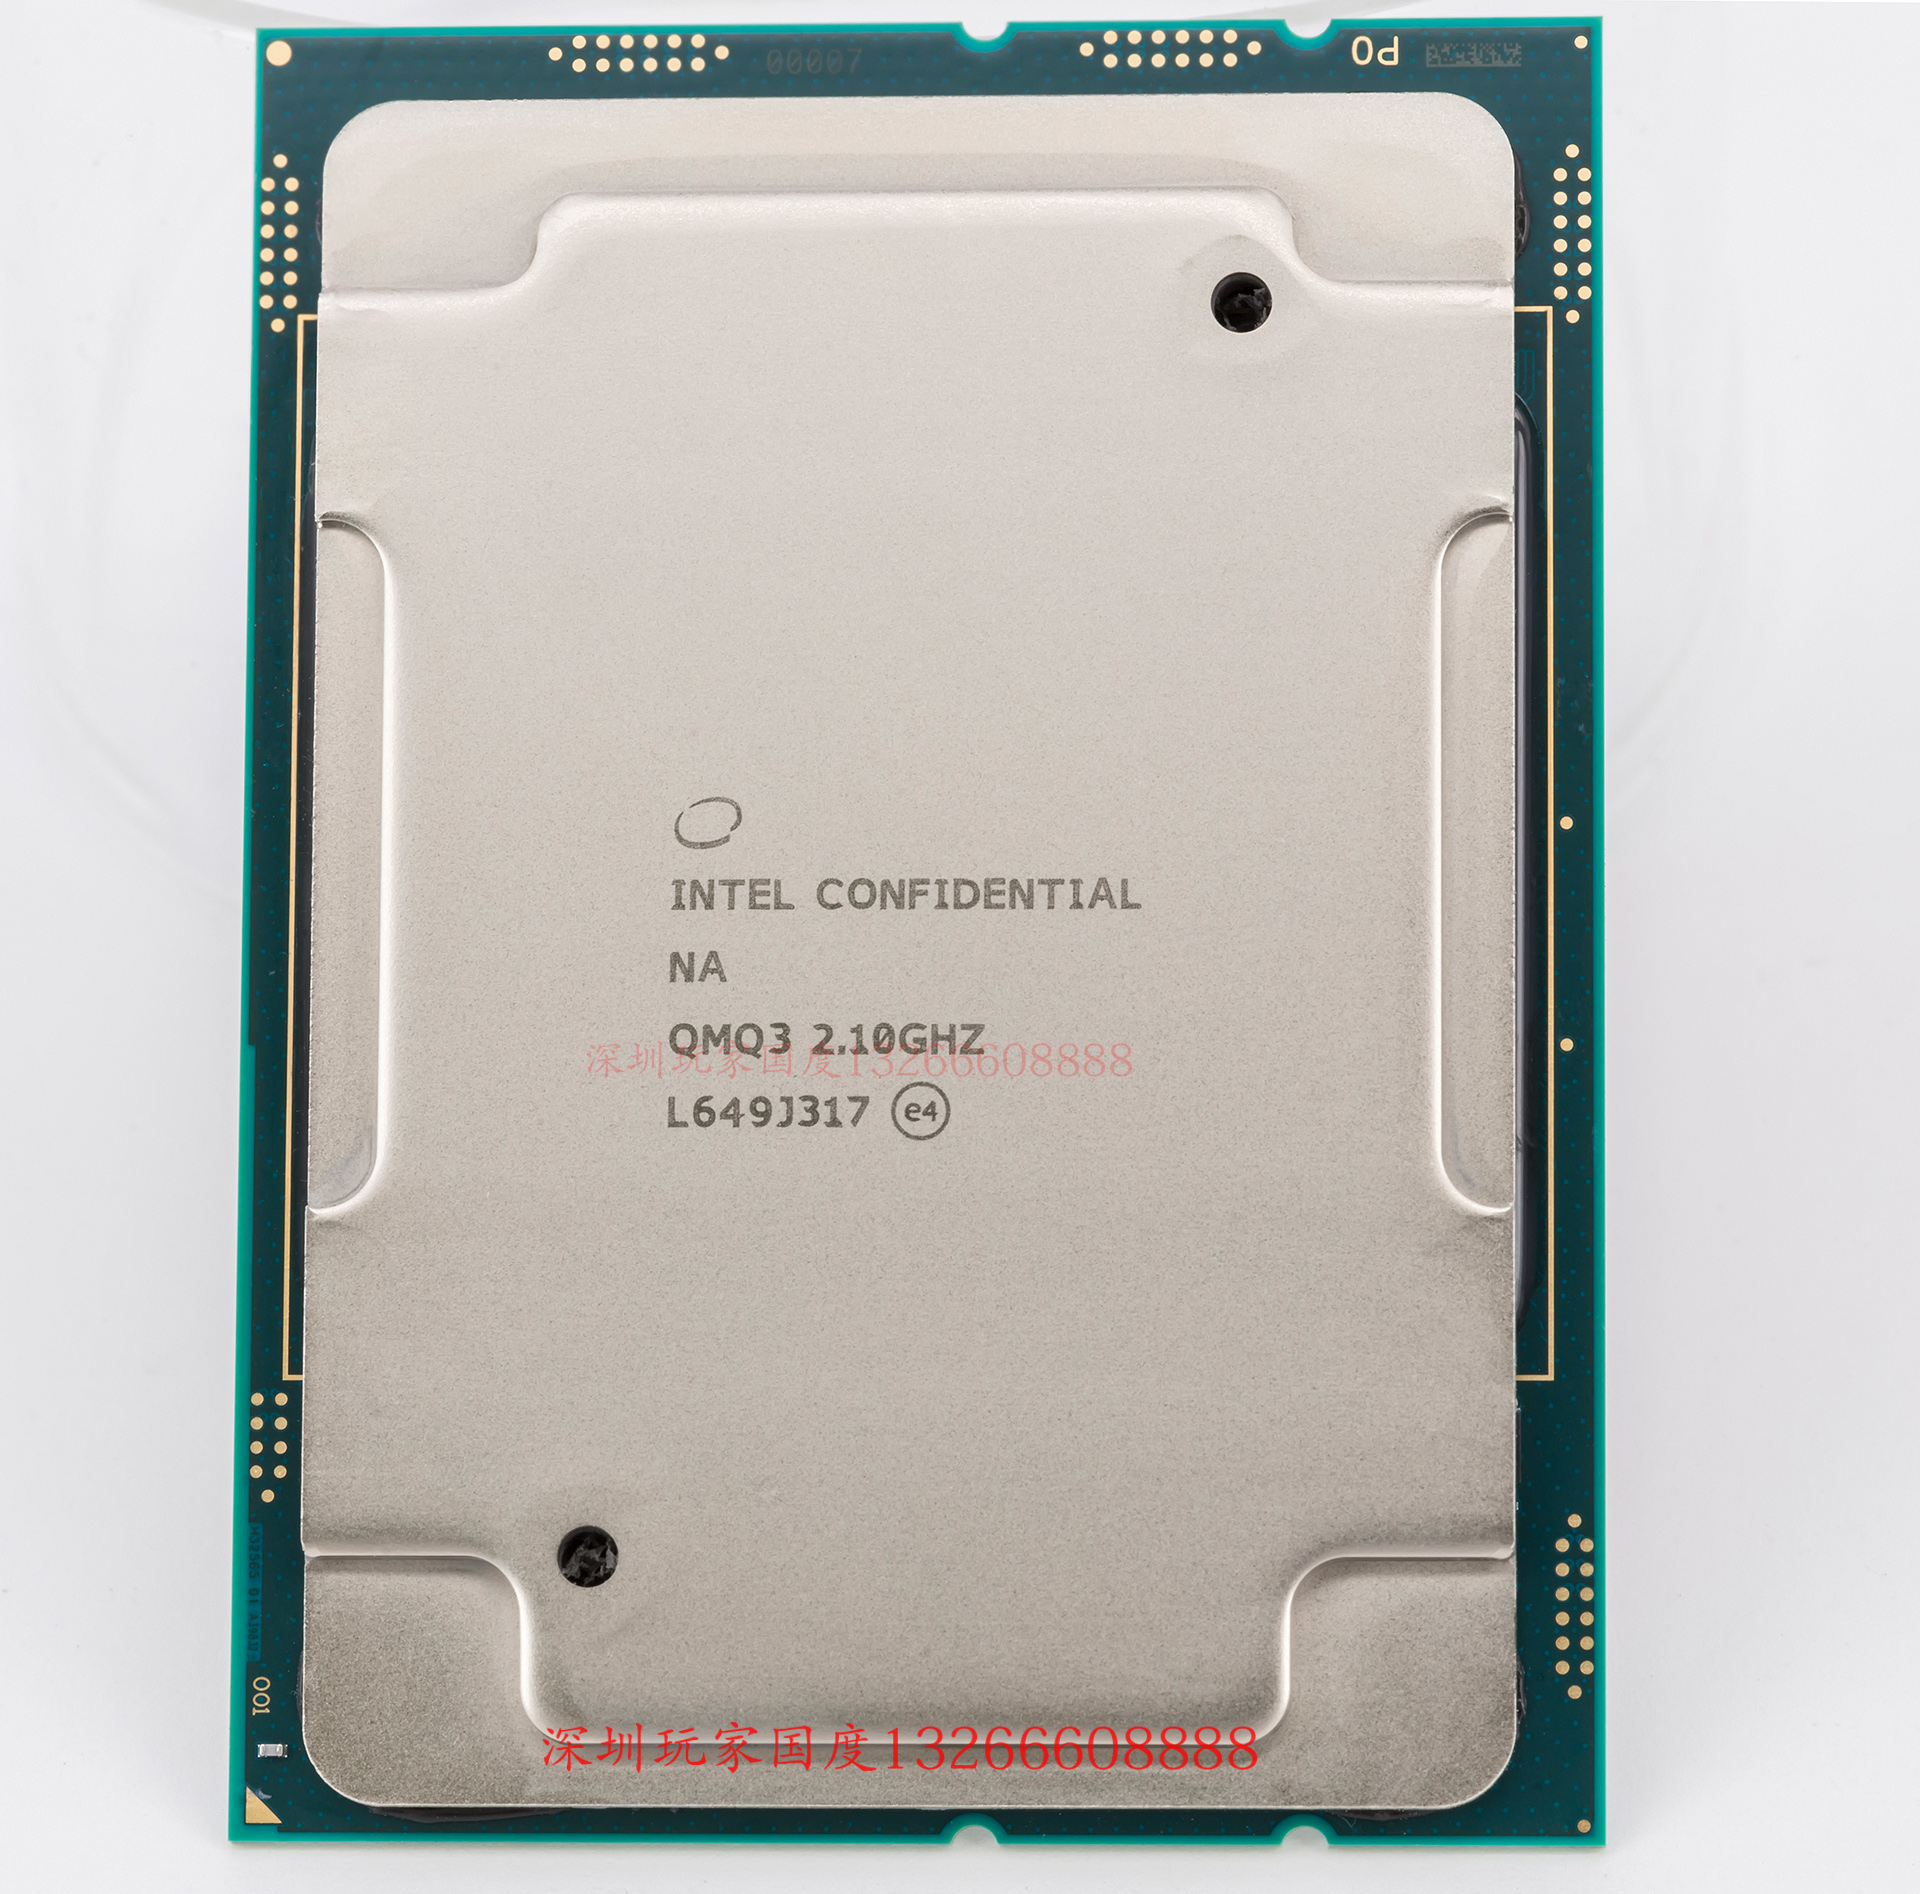 Intel Platinum 8176 28 Cores 56 Threads Processor and Dual Socket 56 Cores 112 Threads Benchmarks